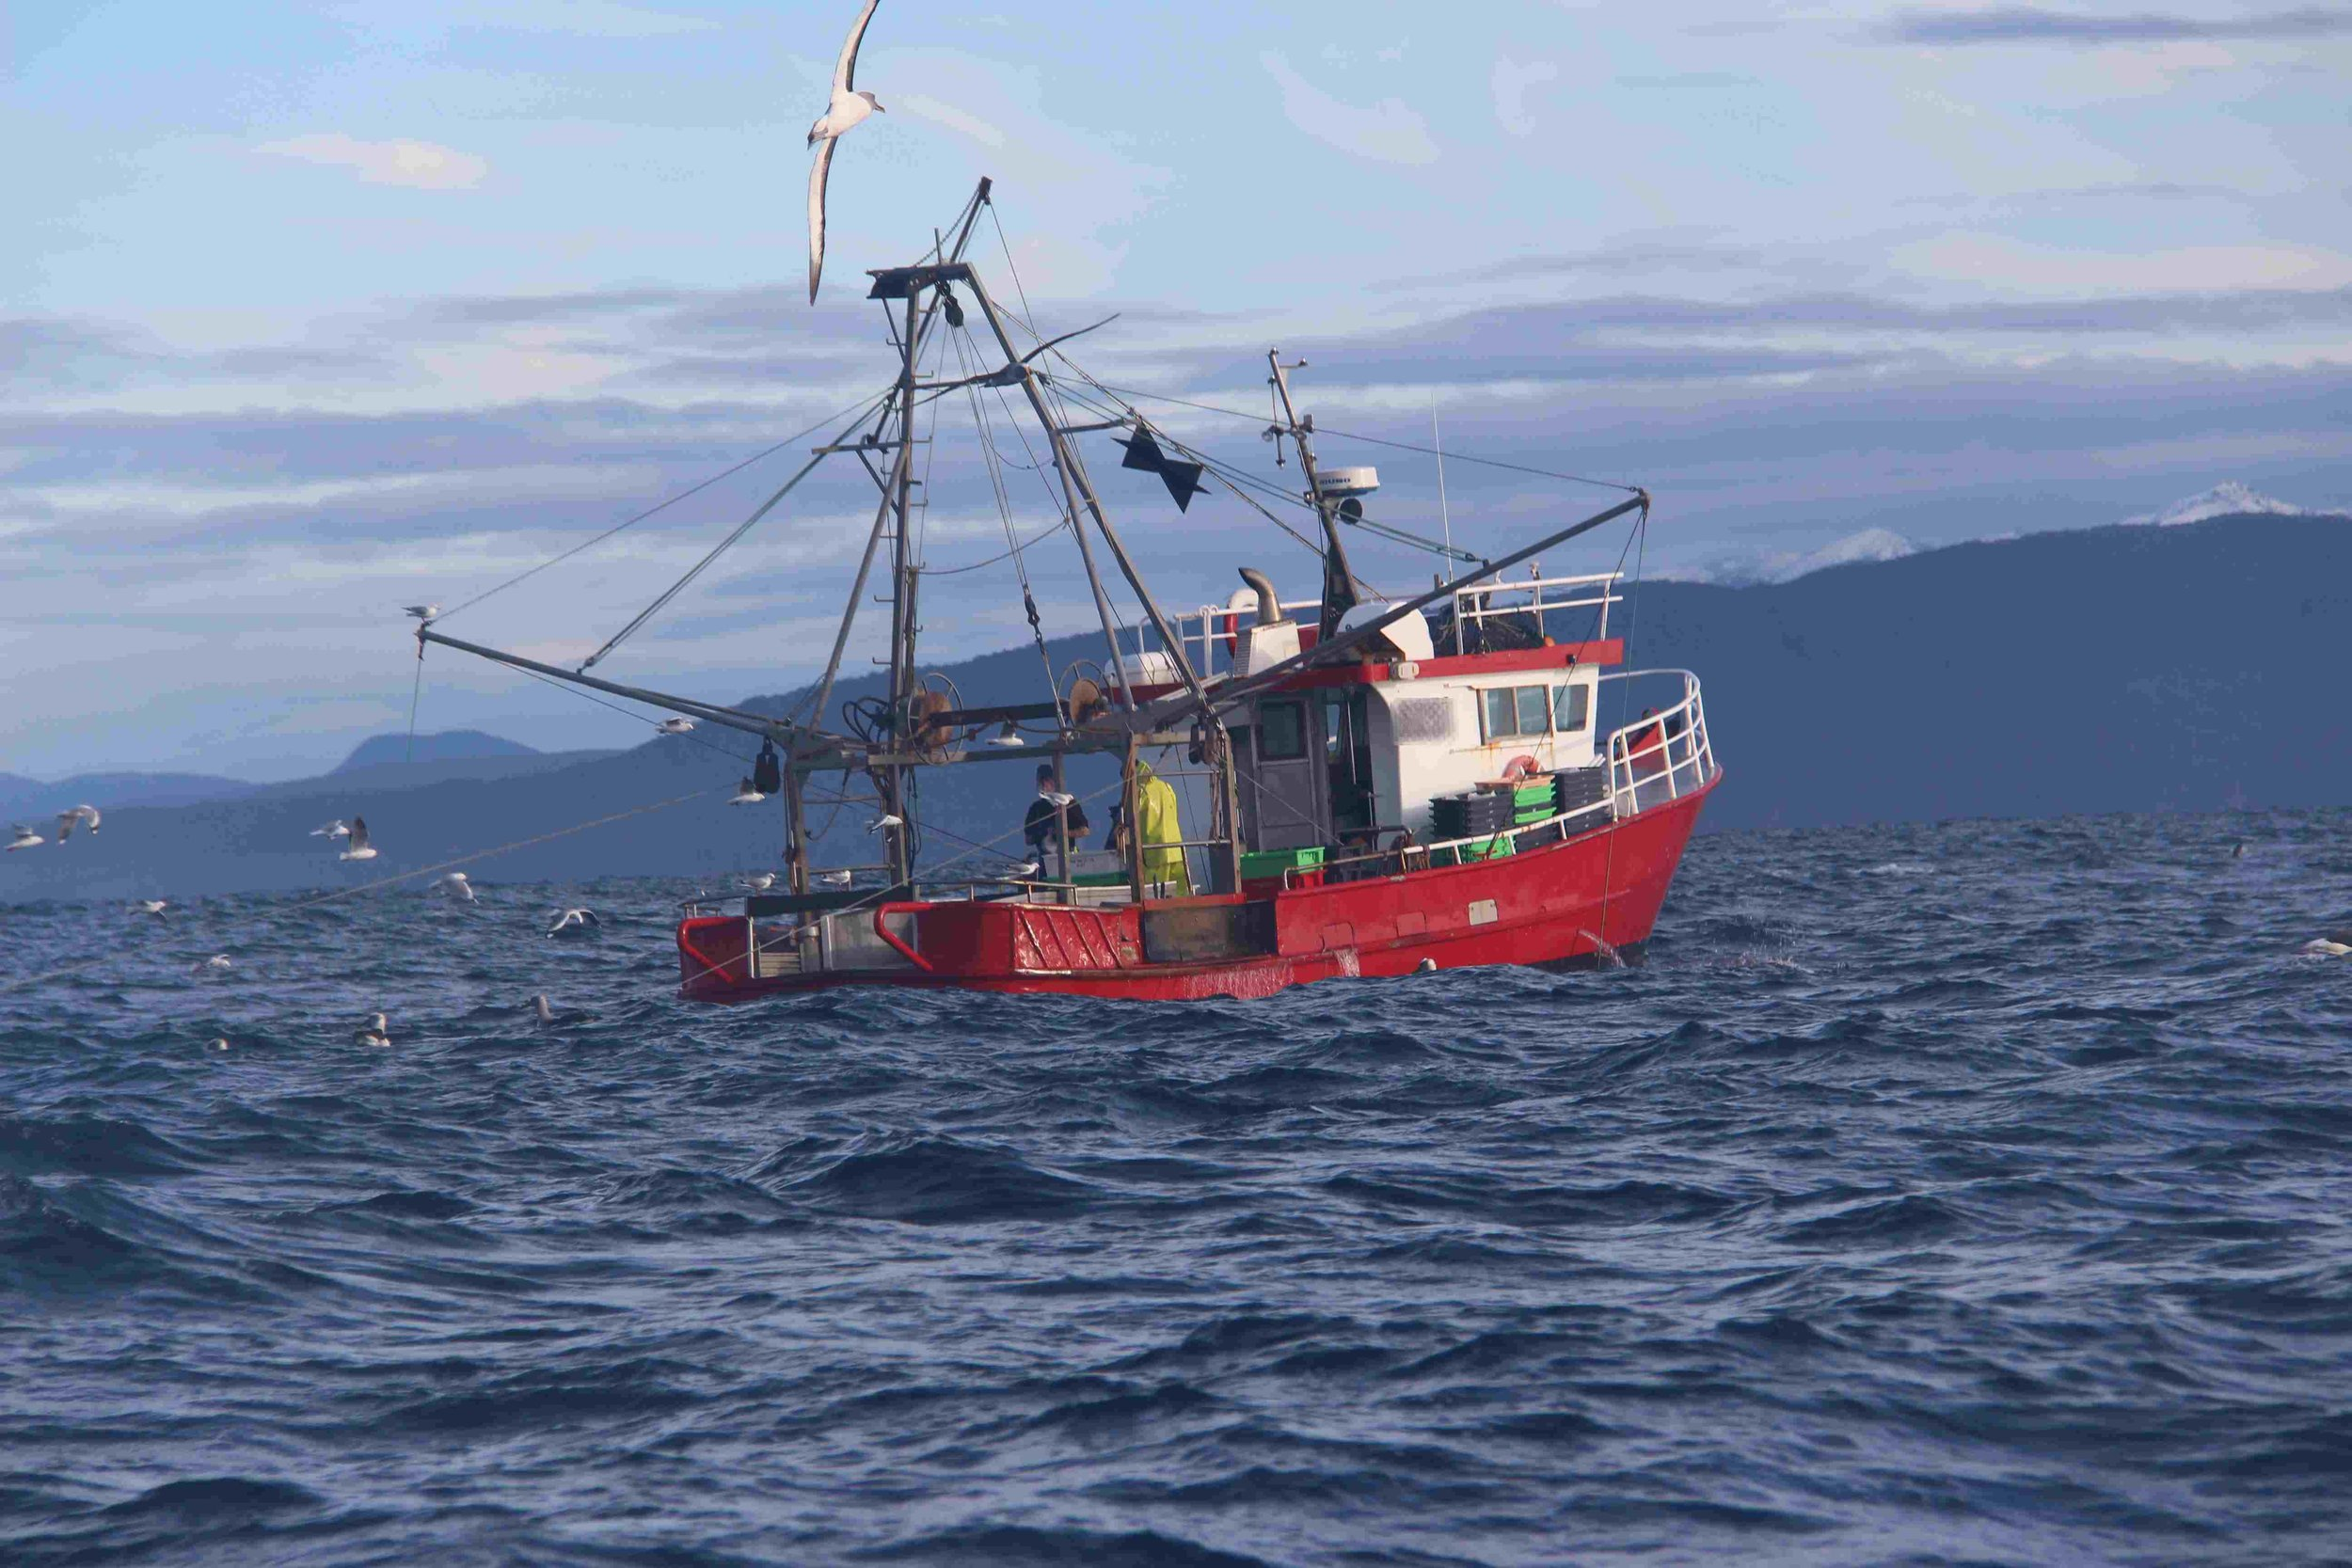 Trawler working 3nm from shore